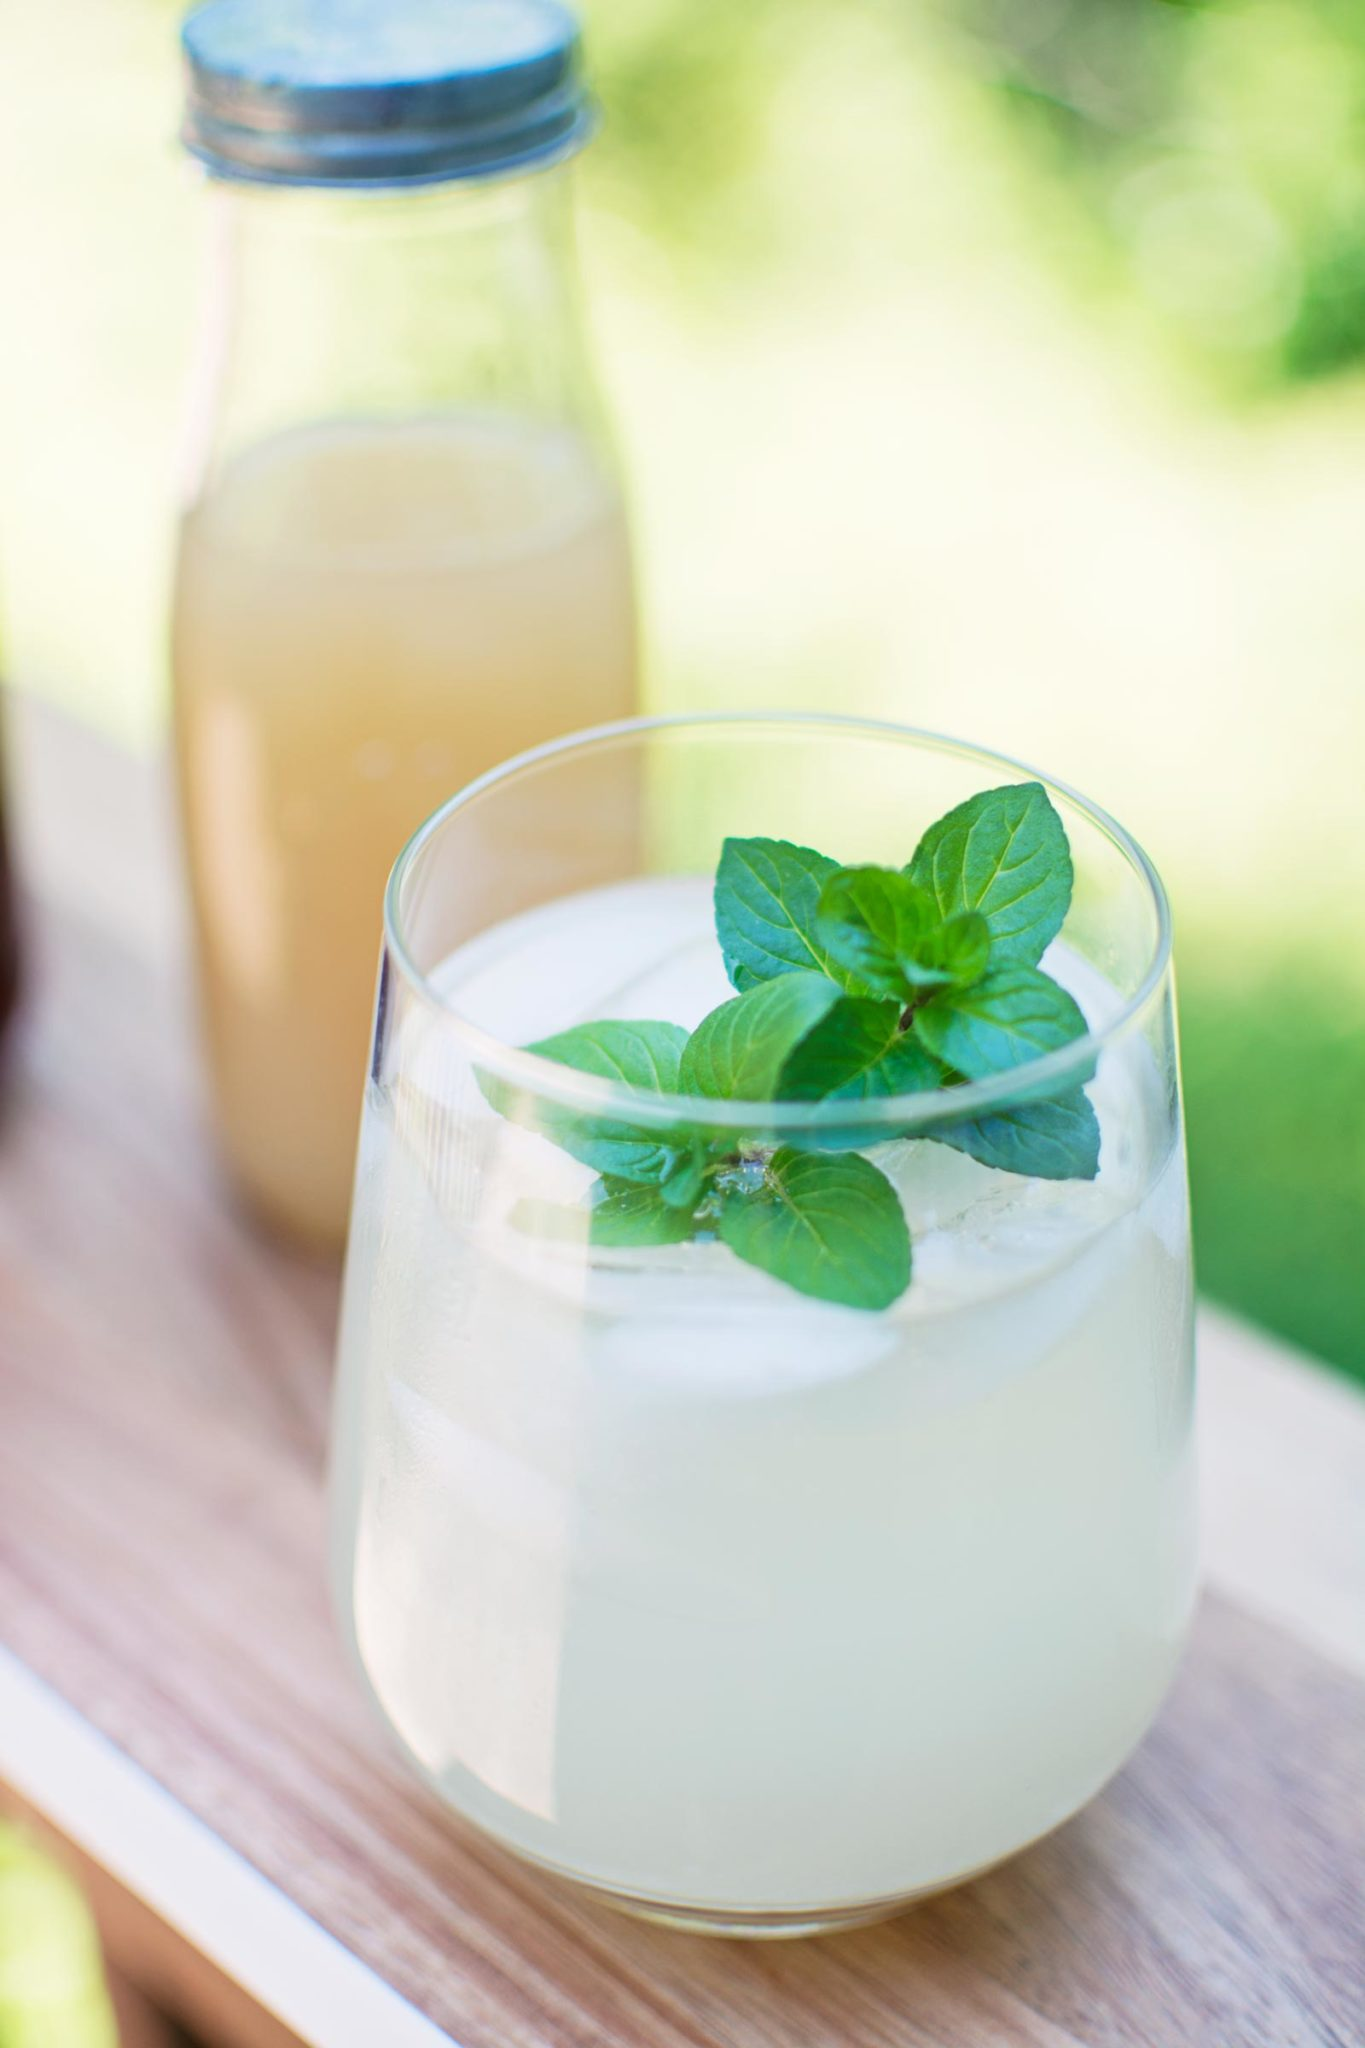 Ice cold ginger beer recipe using a basic flavored syrup to sweeten it up